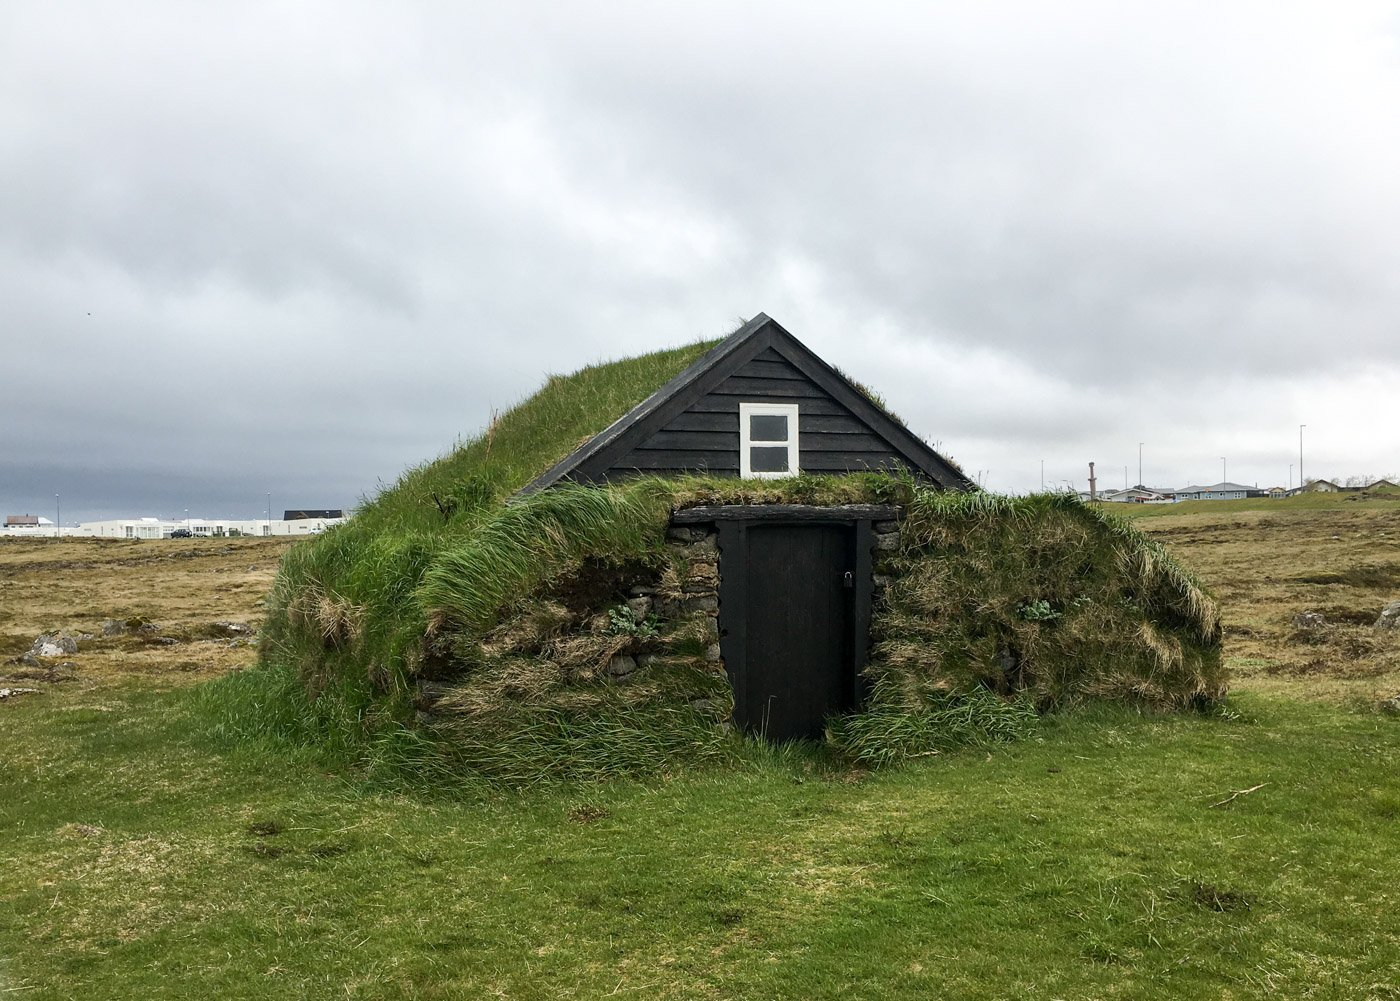 Are you planning a long layover in Iceland? Here are some fun things to do near Keflavik Airport, visiting Reykjanes Peninsula on an Iceland stopover!